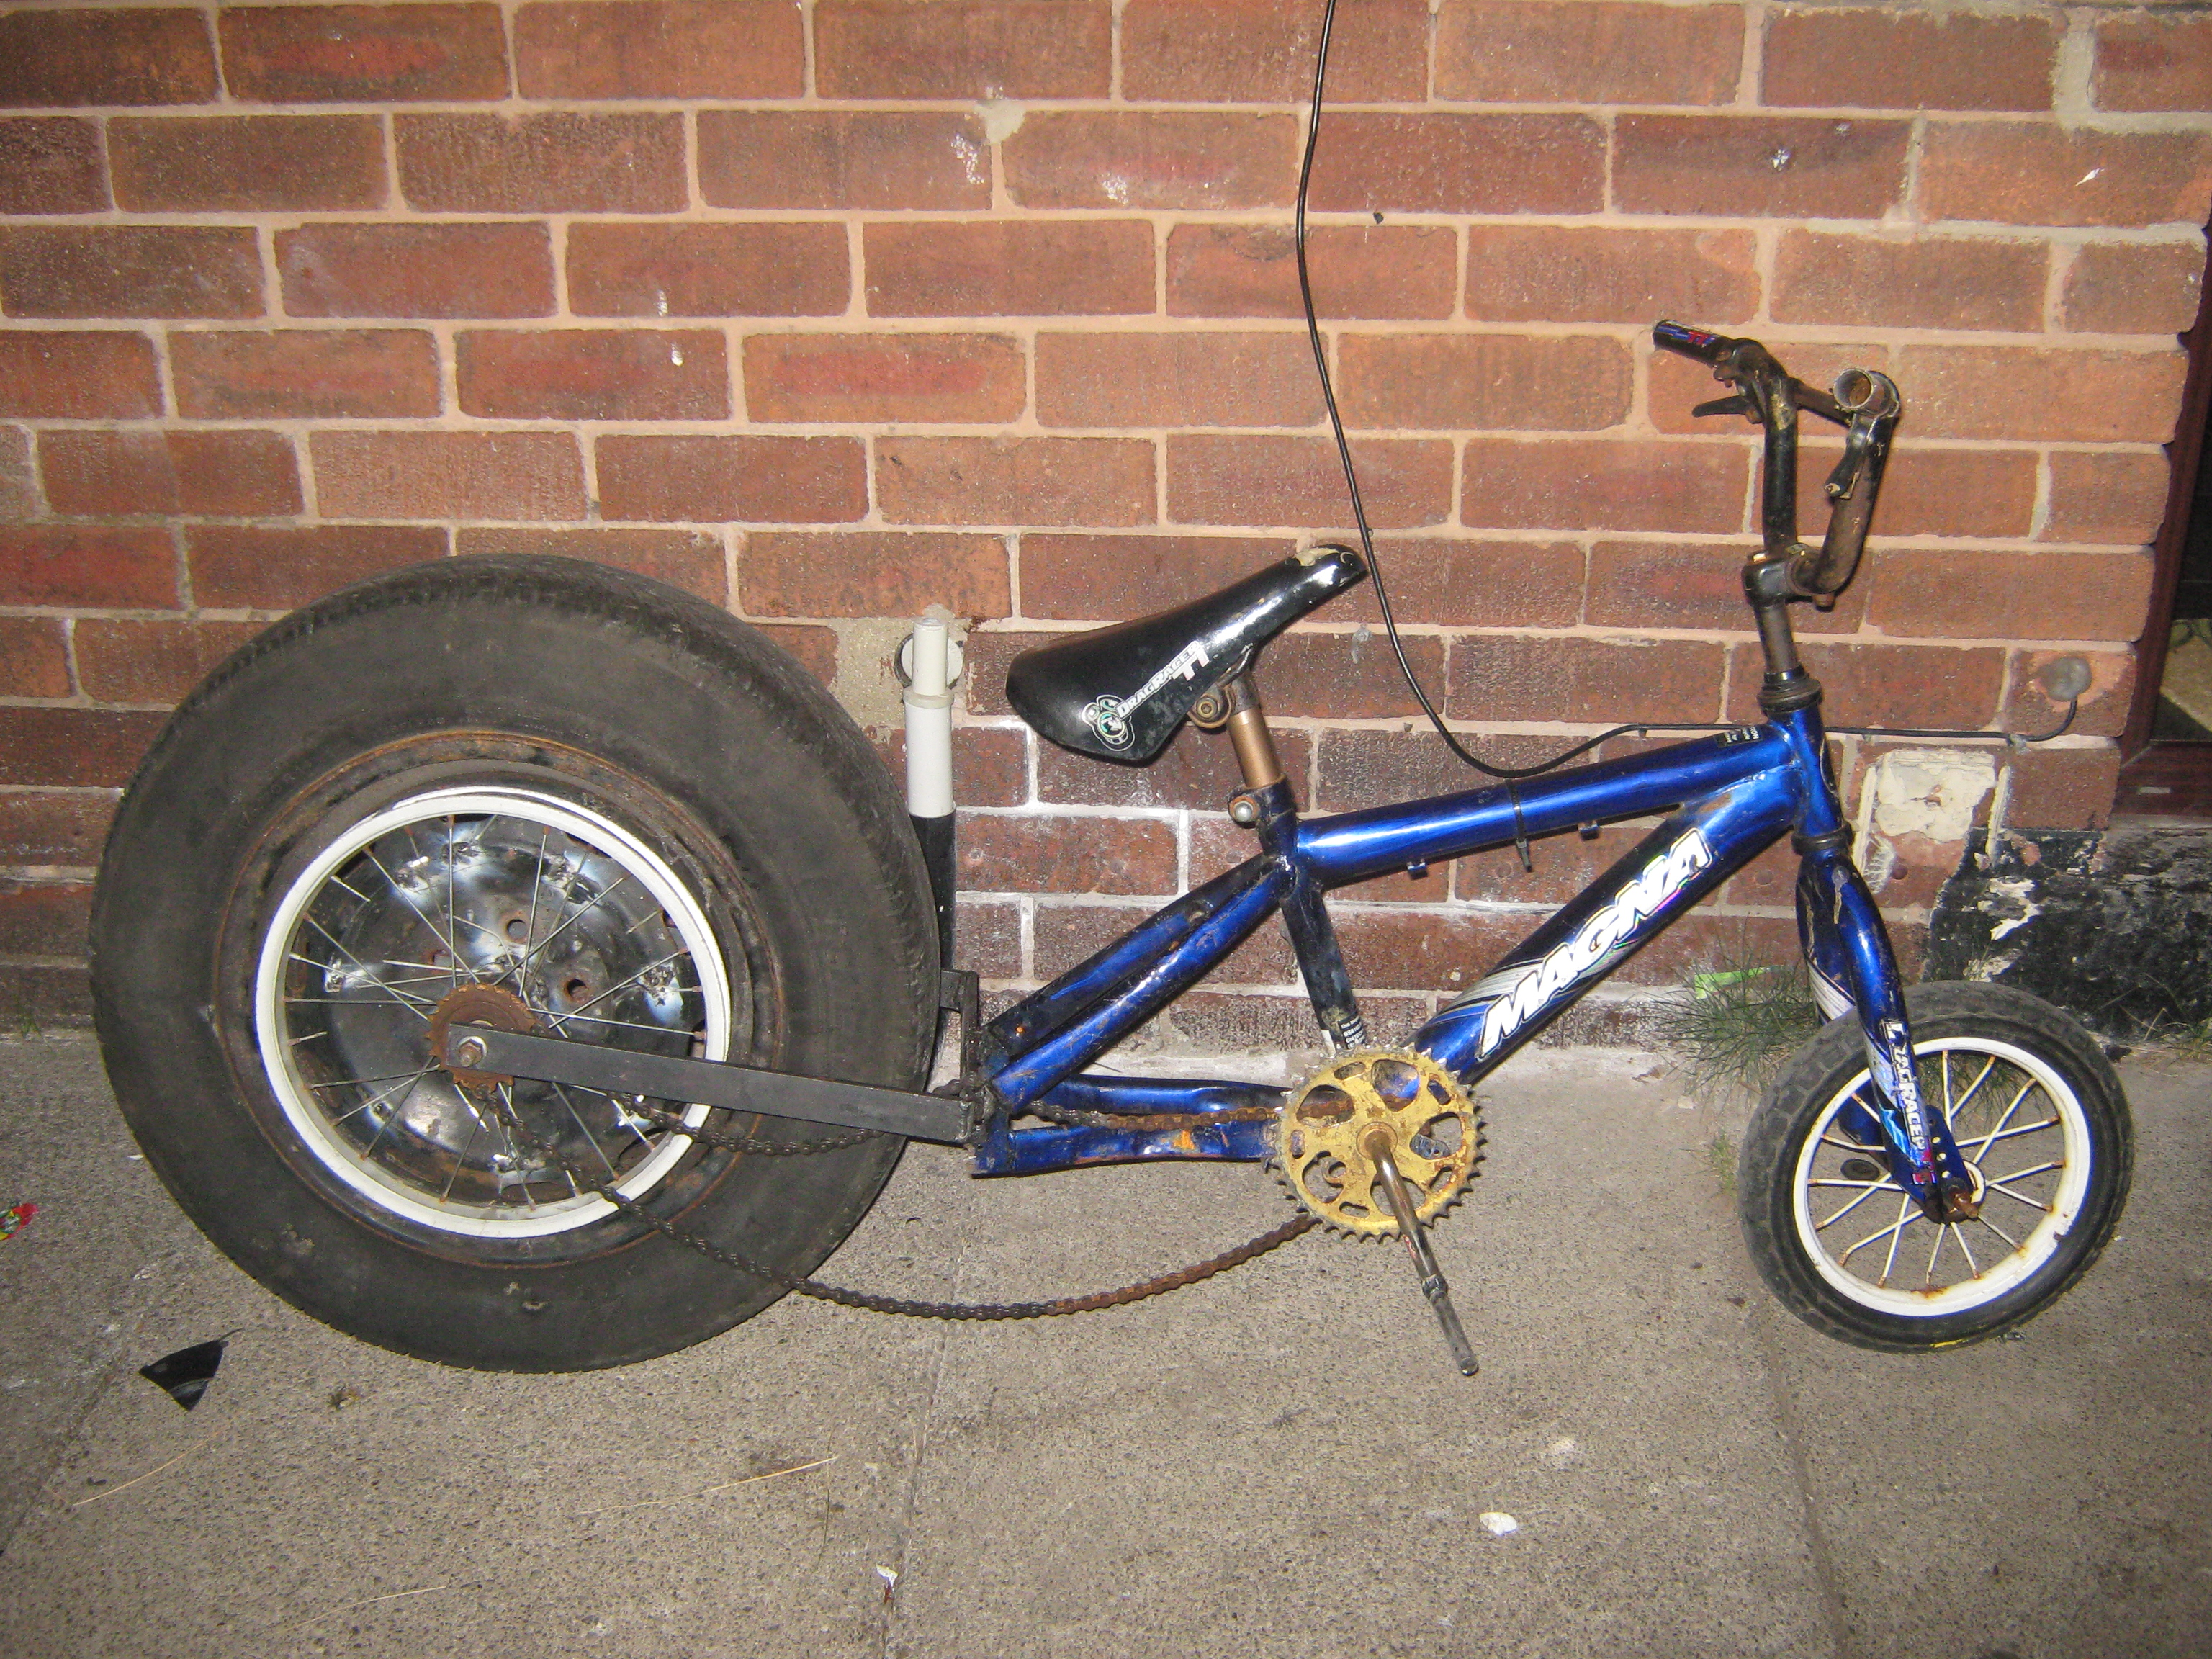 Picture of Push Bike With Car Wheel (dragster Look)